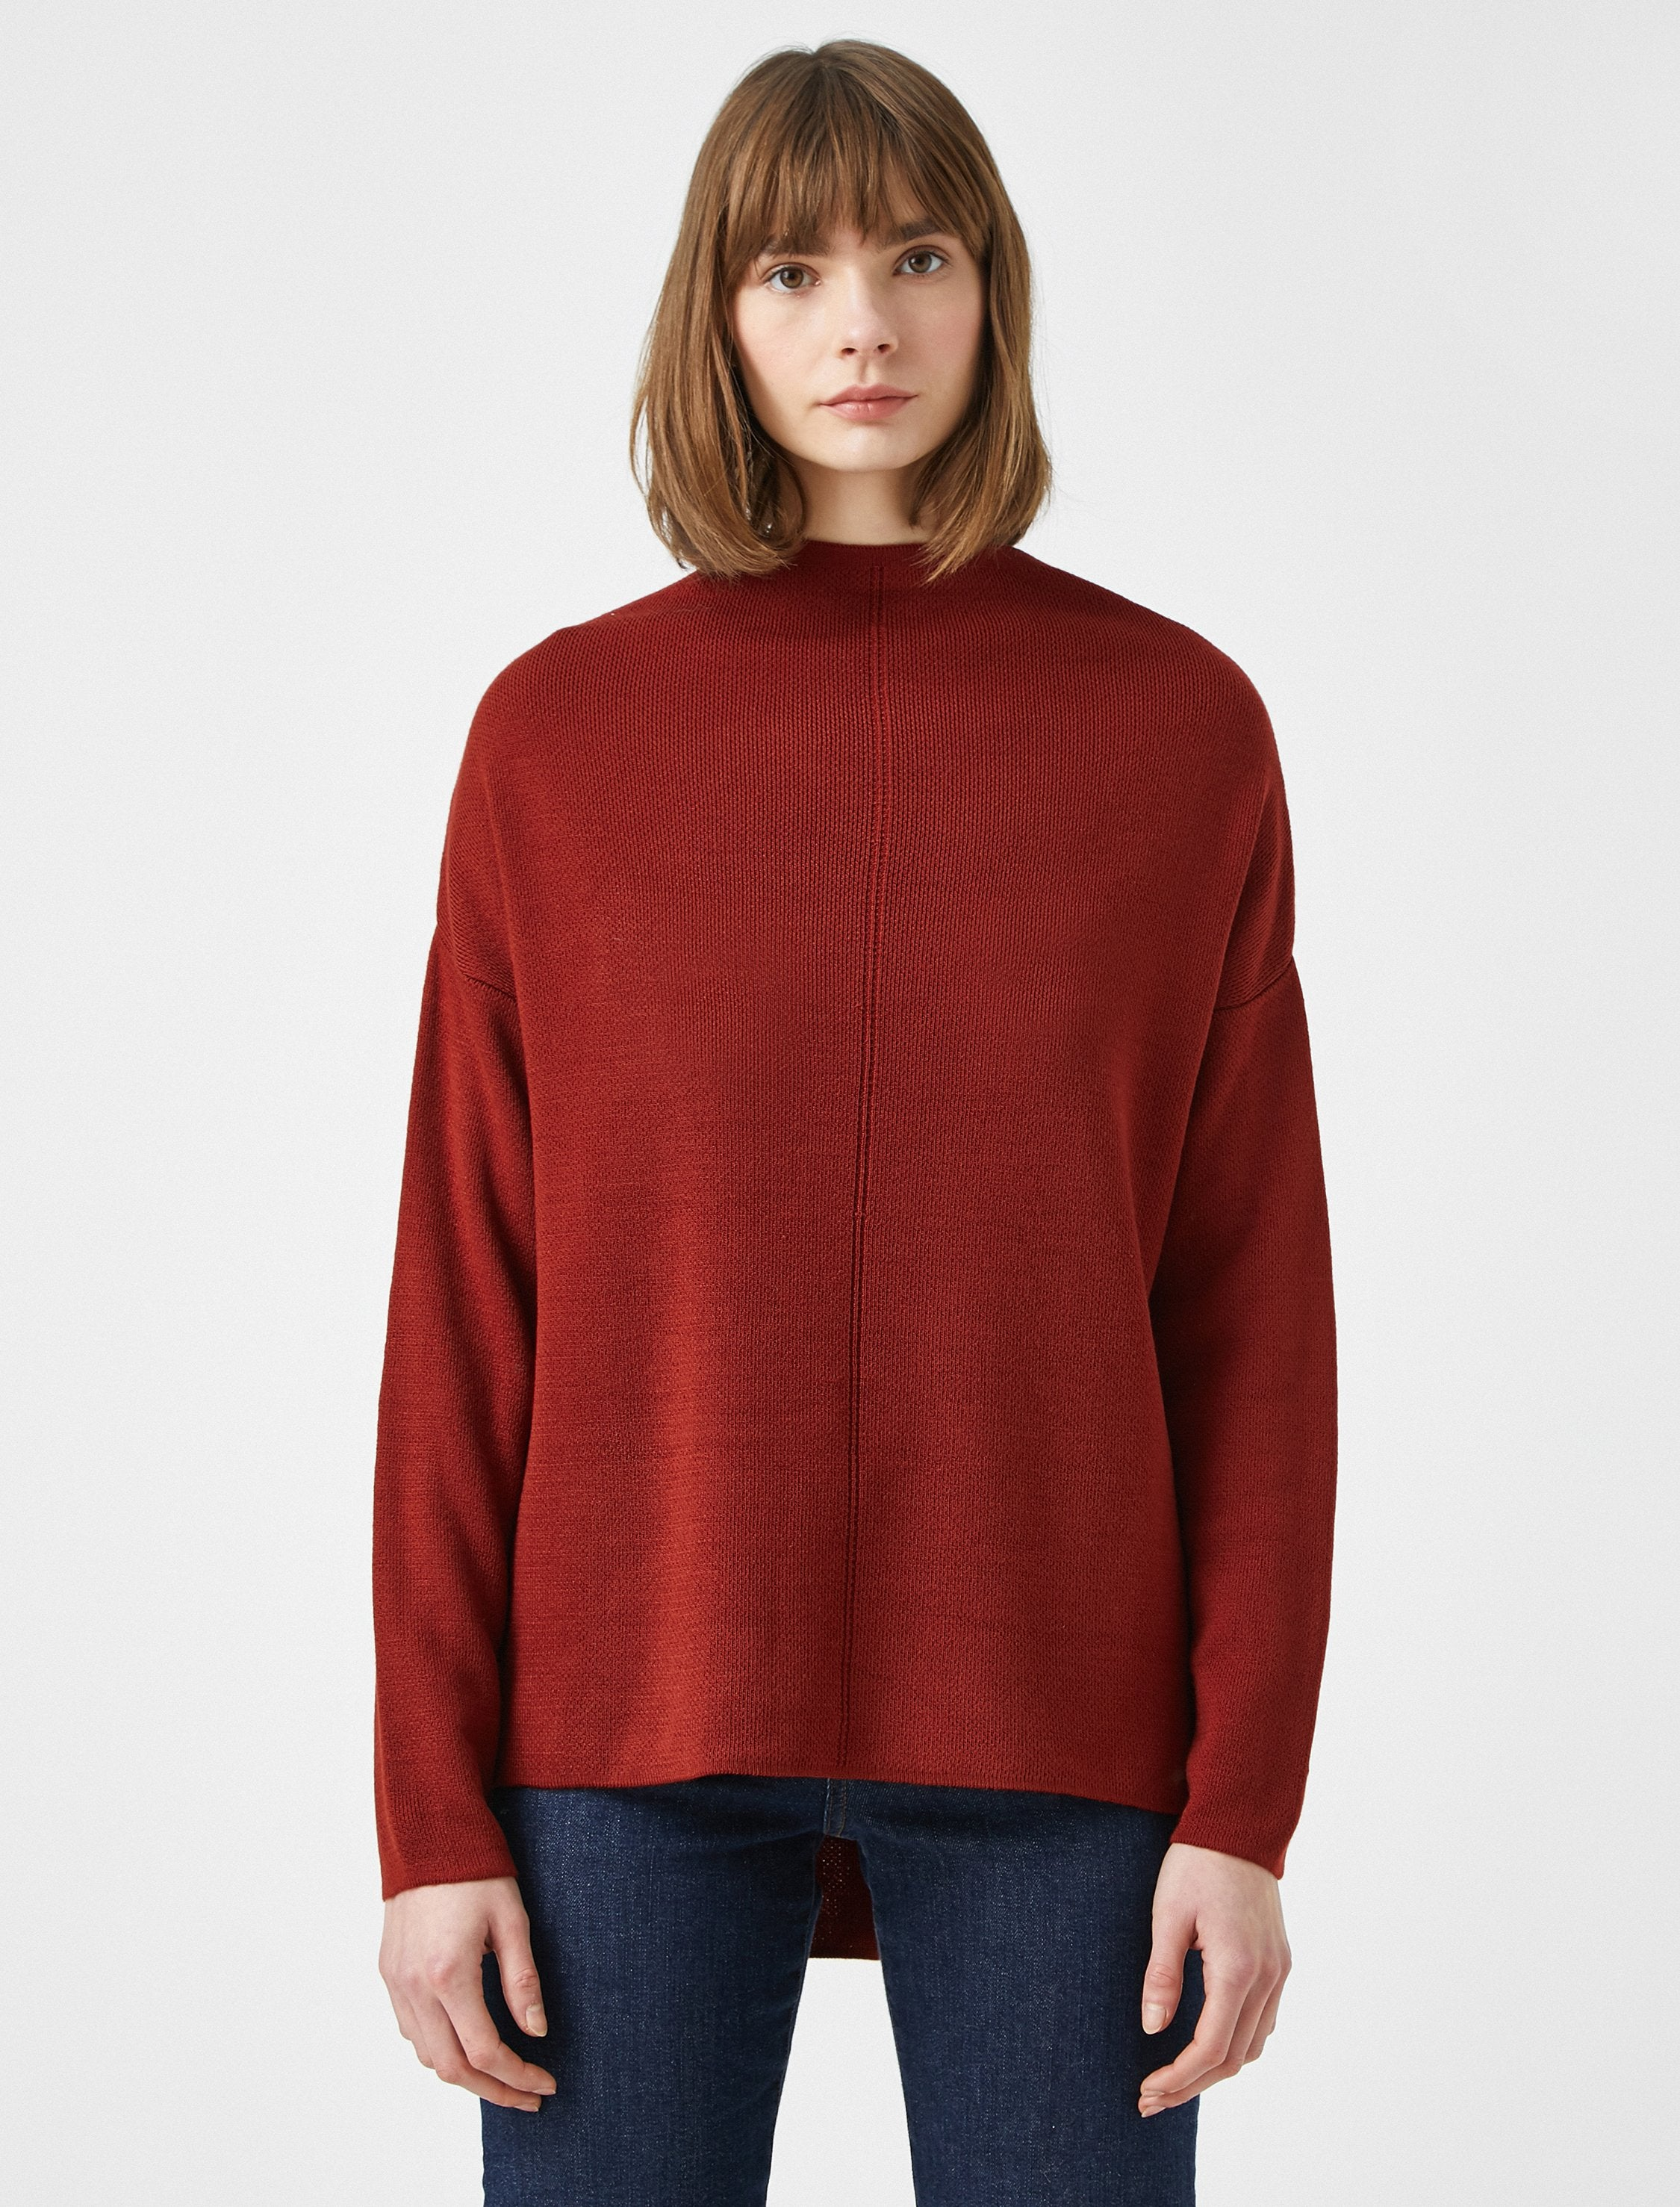 Oversize Mock Neck Sweater in Clay